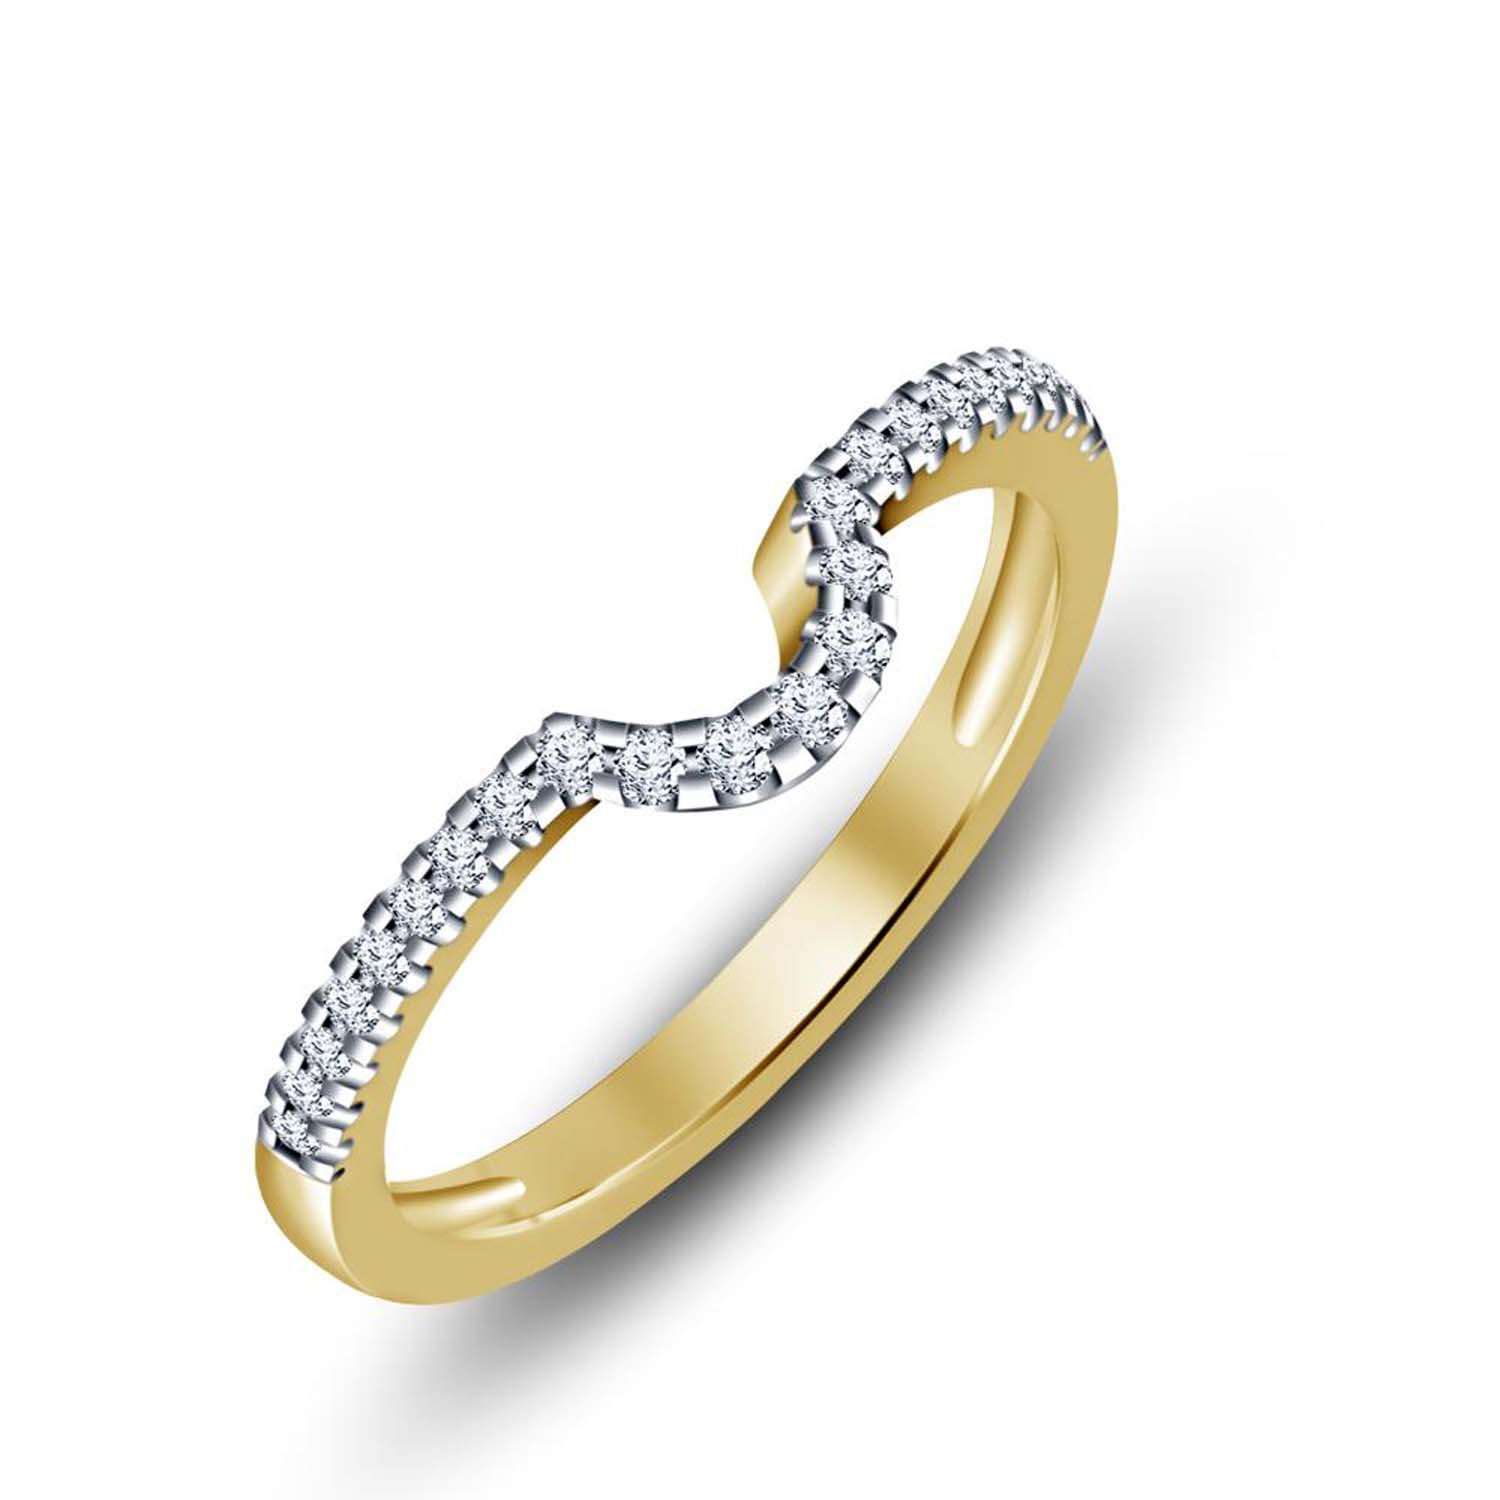 Gems and Jewels 14K Yellow Gold Plating Simulated Diamonds Anniversary Promise Classic Look Band Ring Engagement /& Wedding Ring